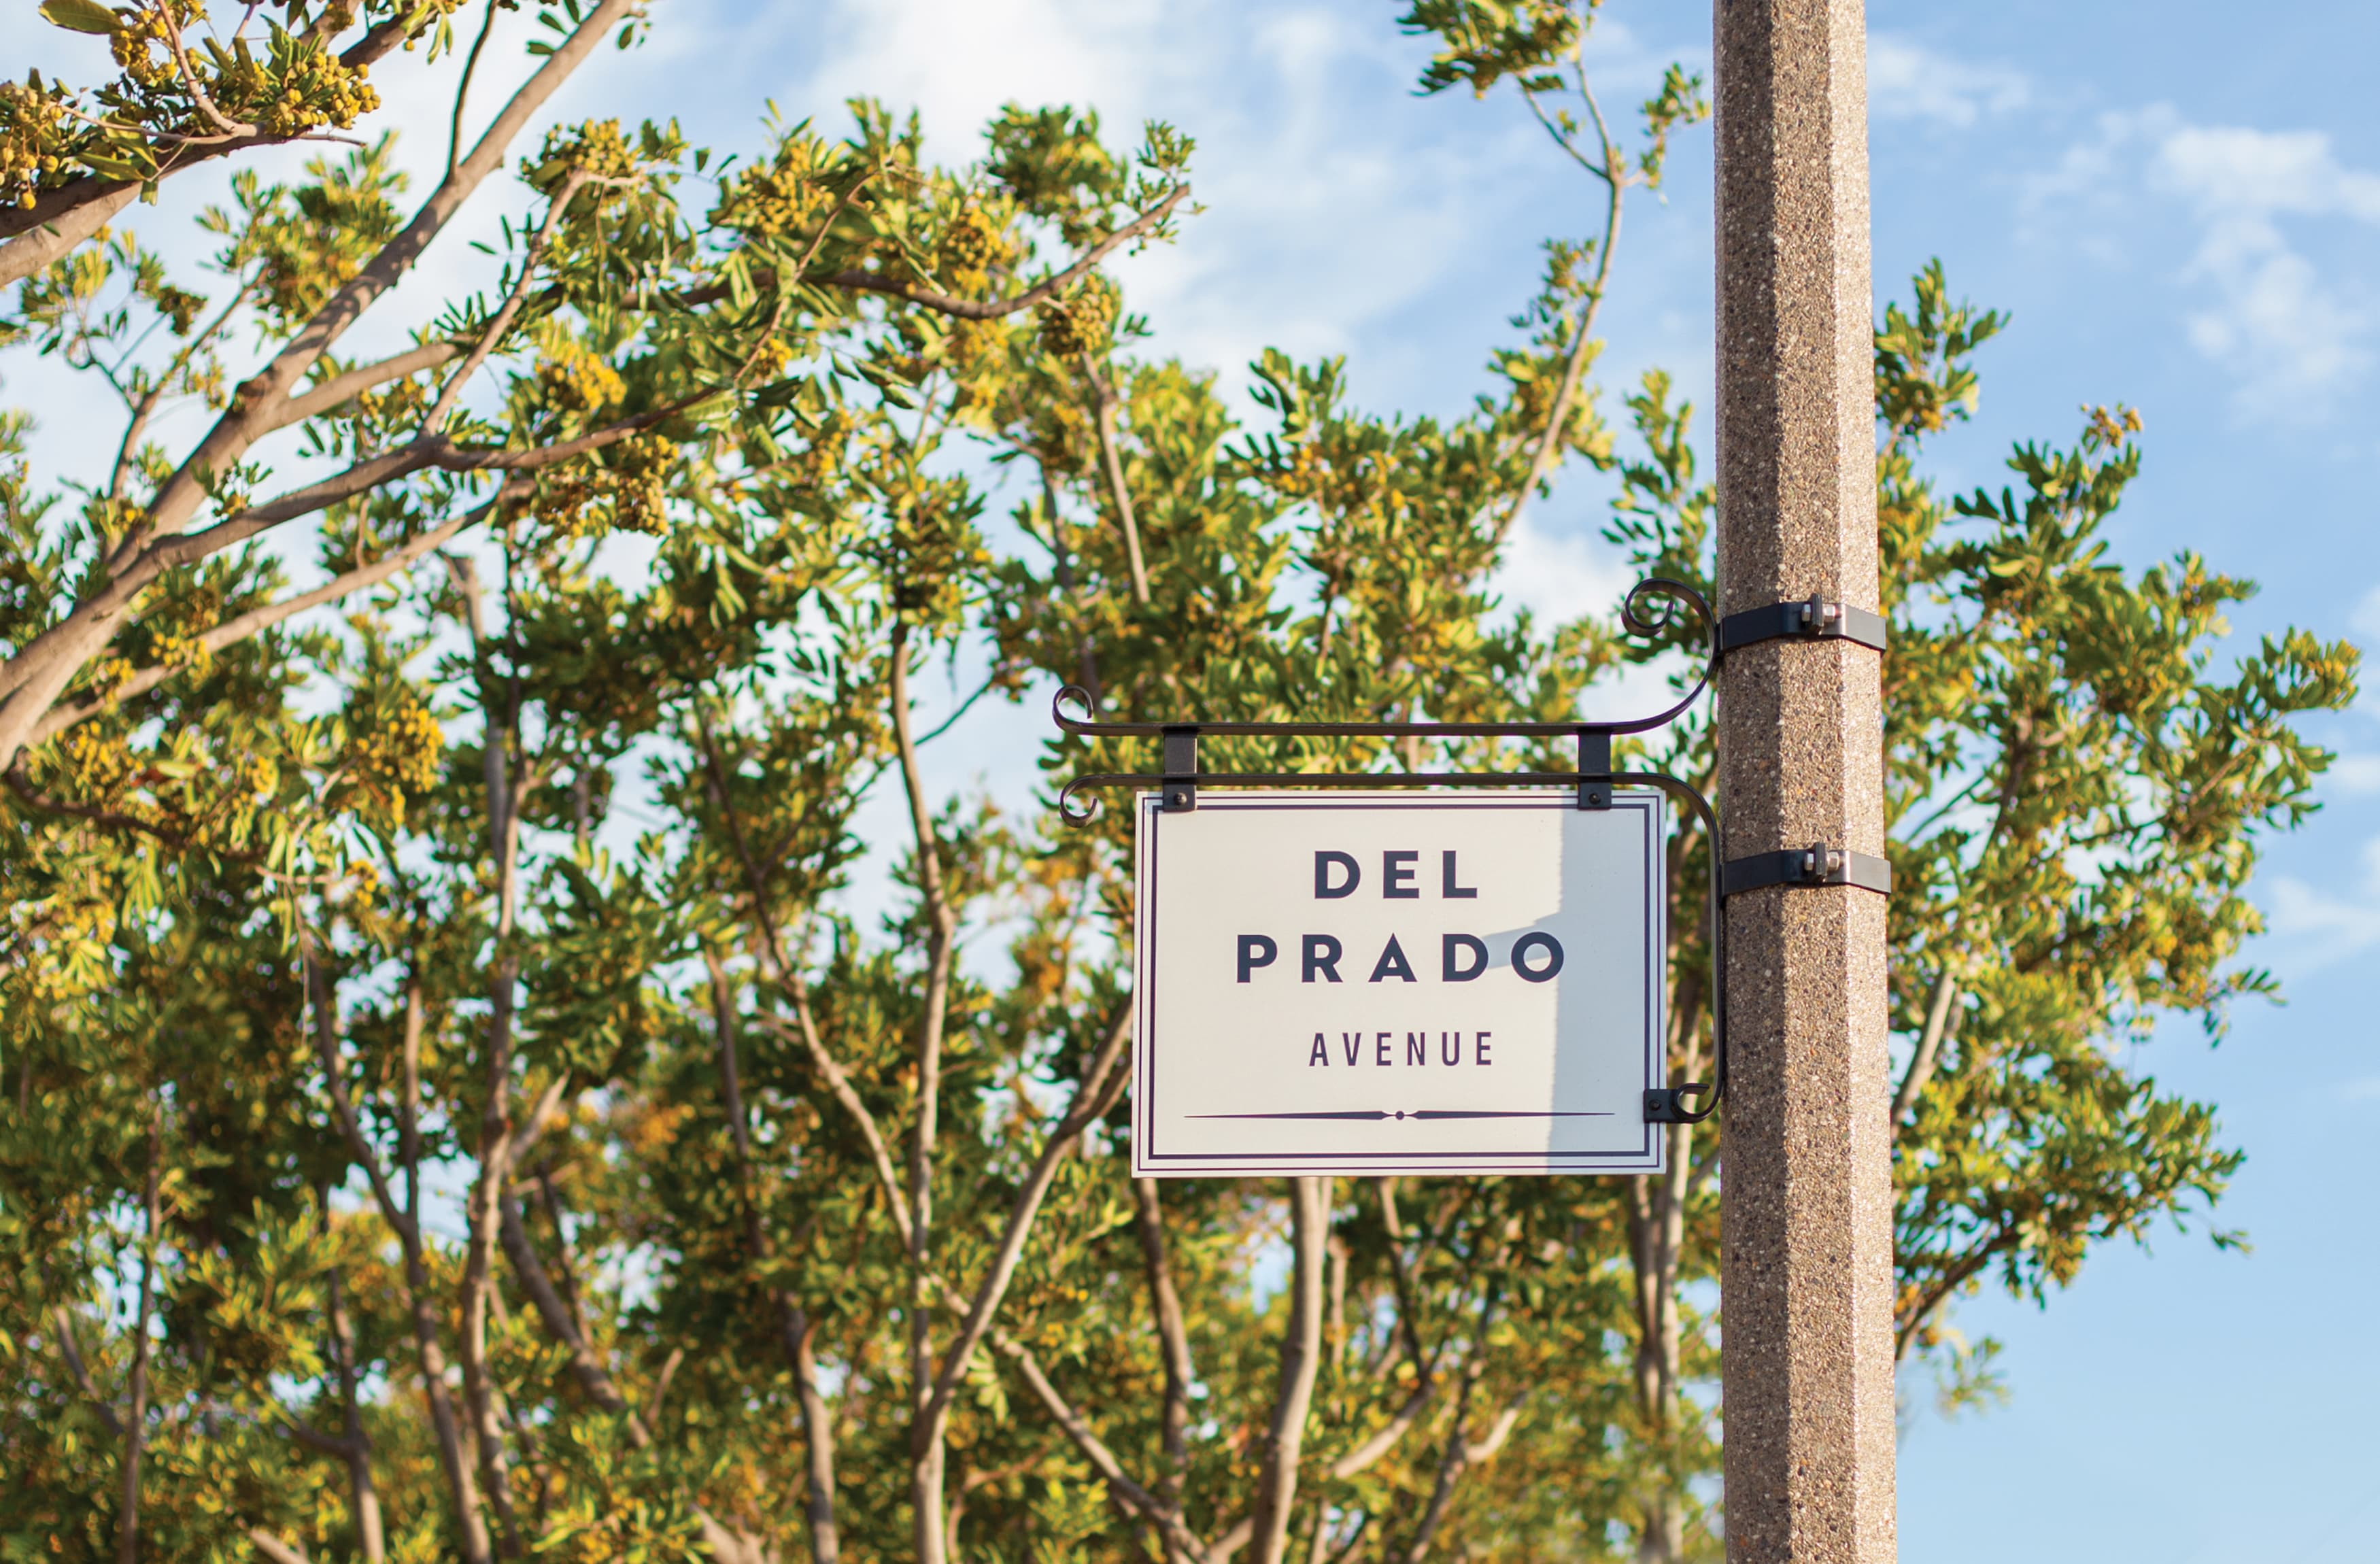 The City of Dana Point street identity sign civic design